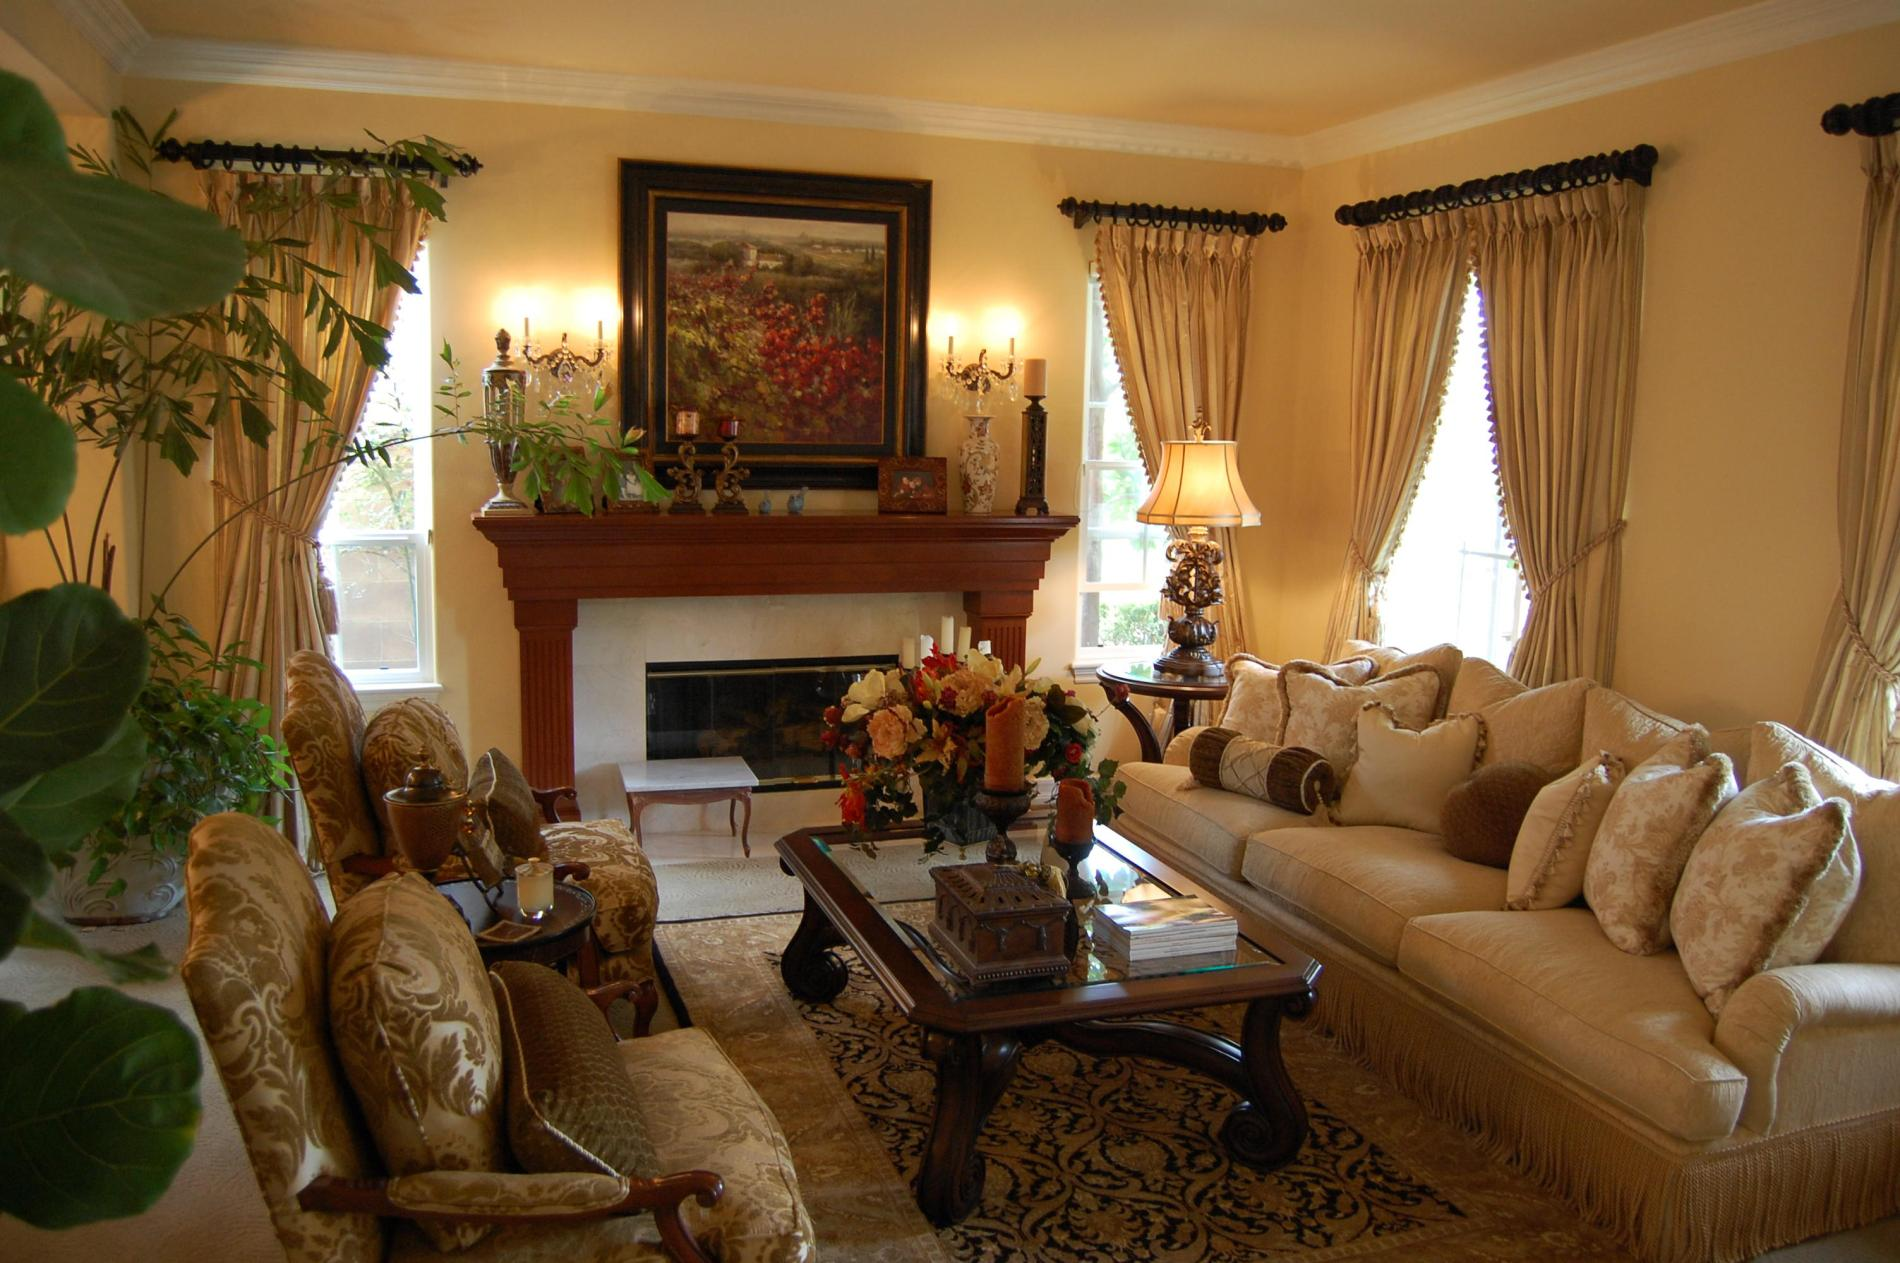 33 Traditional Living Room Design - The WoW Style on Photo Room Decor  id=23916